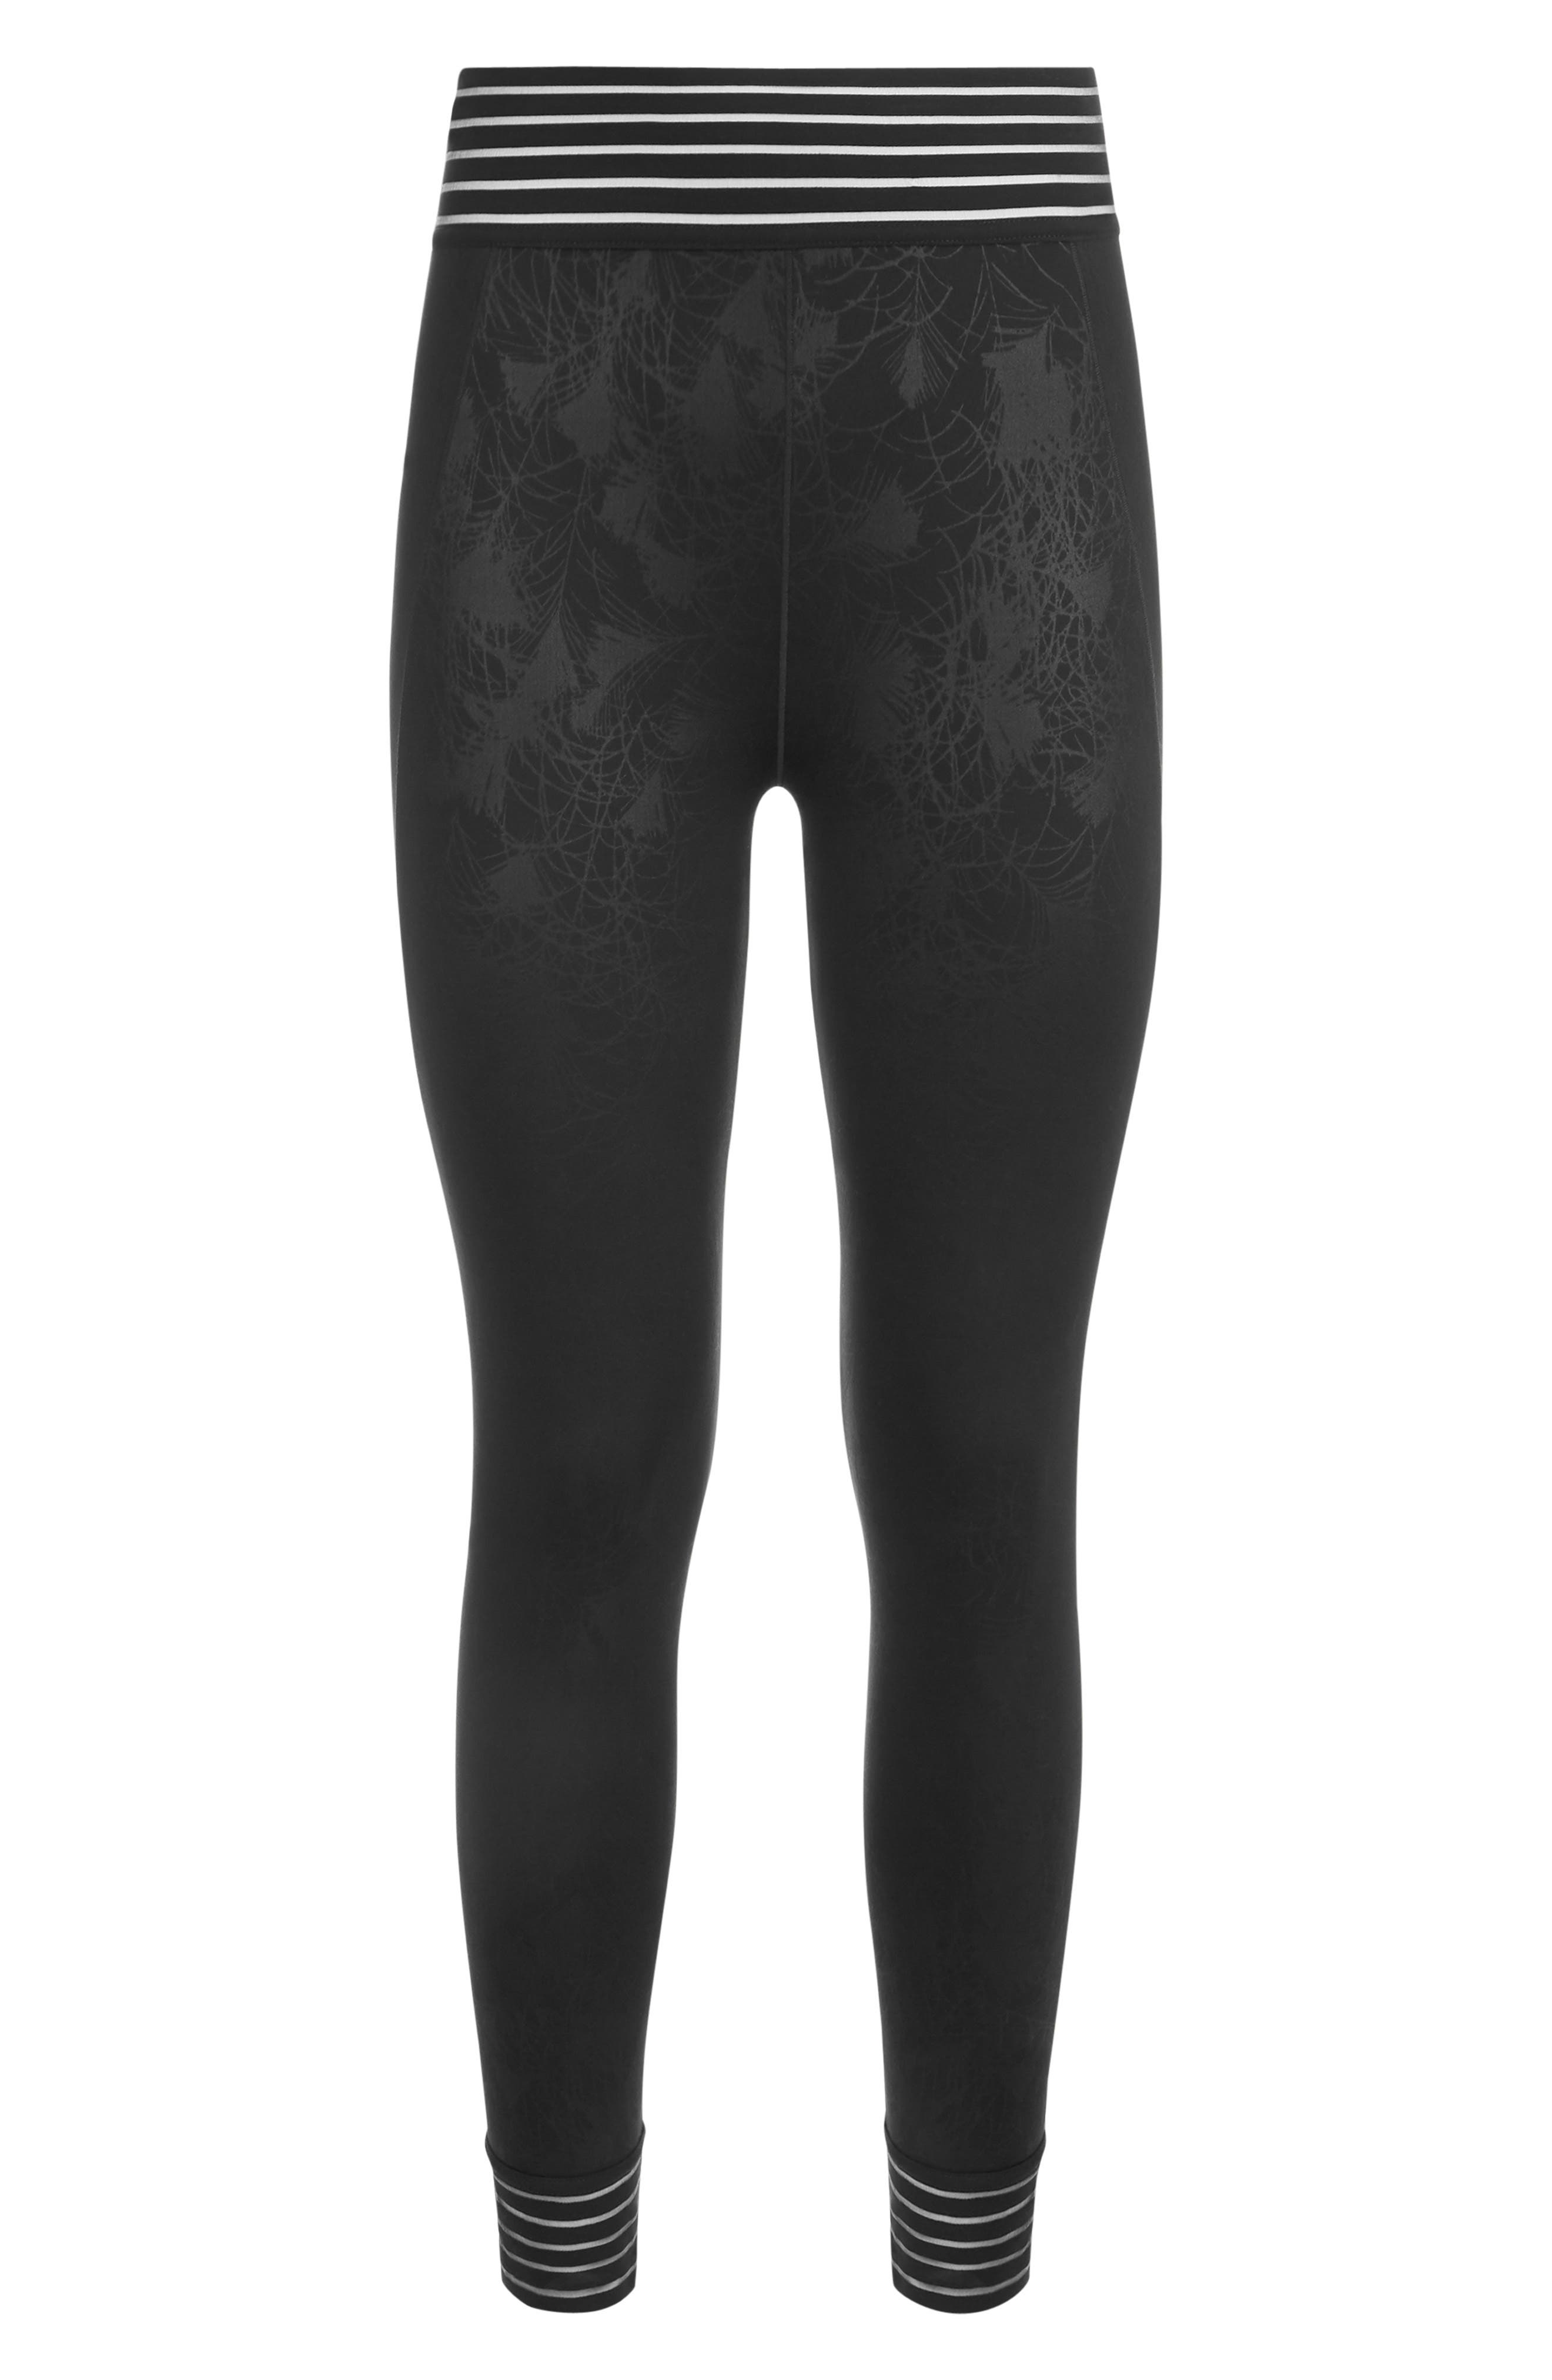 SWEATY BETTY, Contour Leggings, Alternate thumbnail 5, color, BLACK EMBOSSED FEATHER